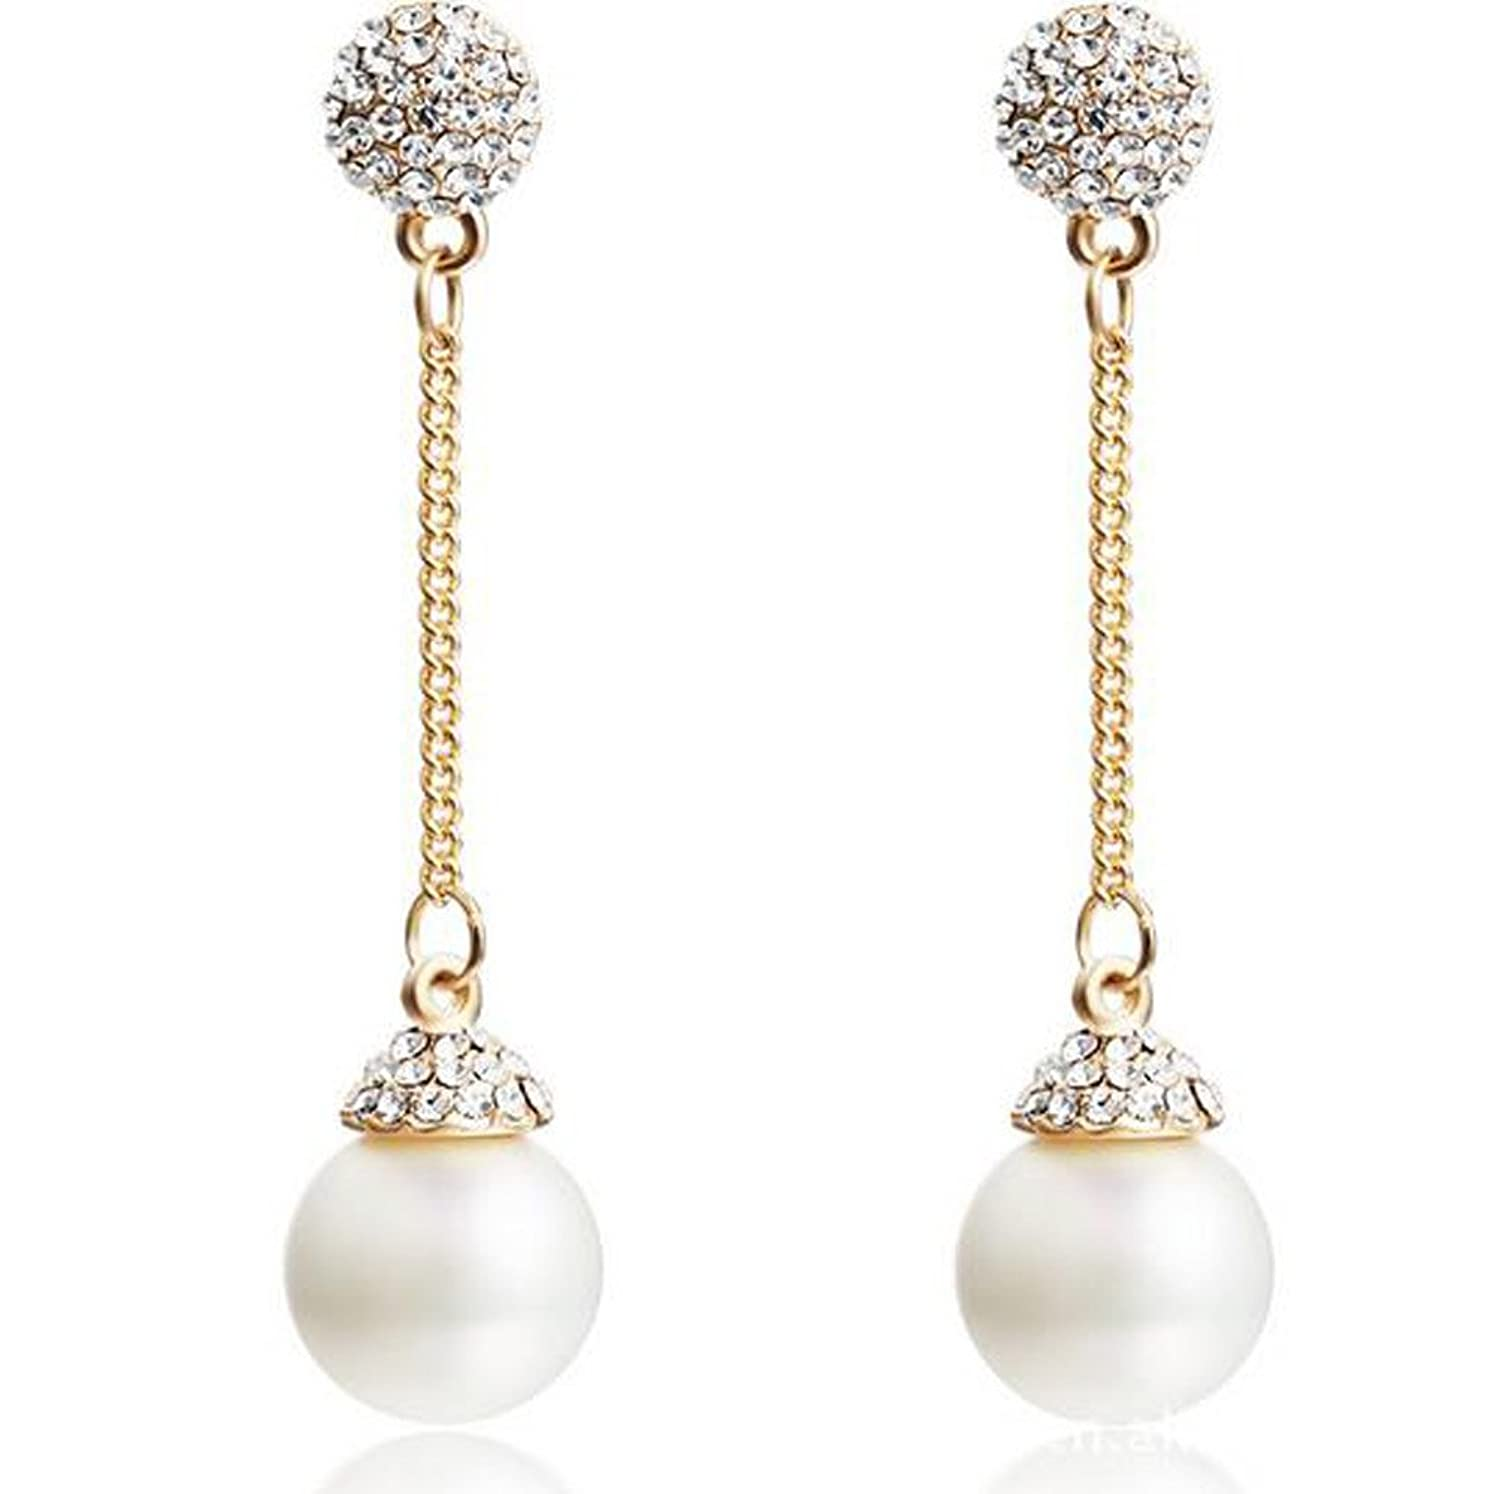 Modogirl Bohemia Simulated-pearl Long Round Statement Ear Clip earrings for Women